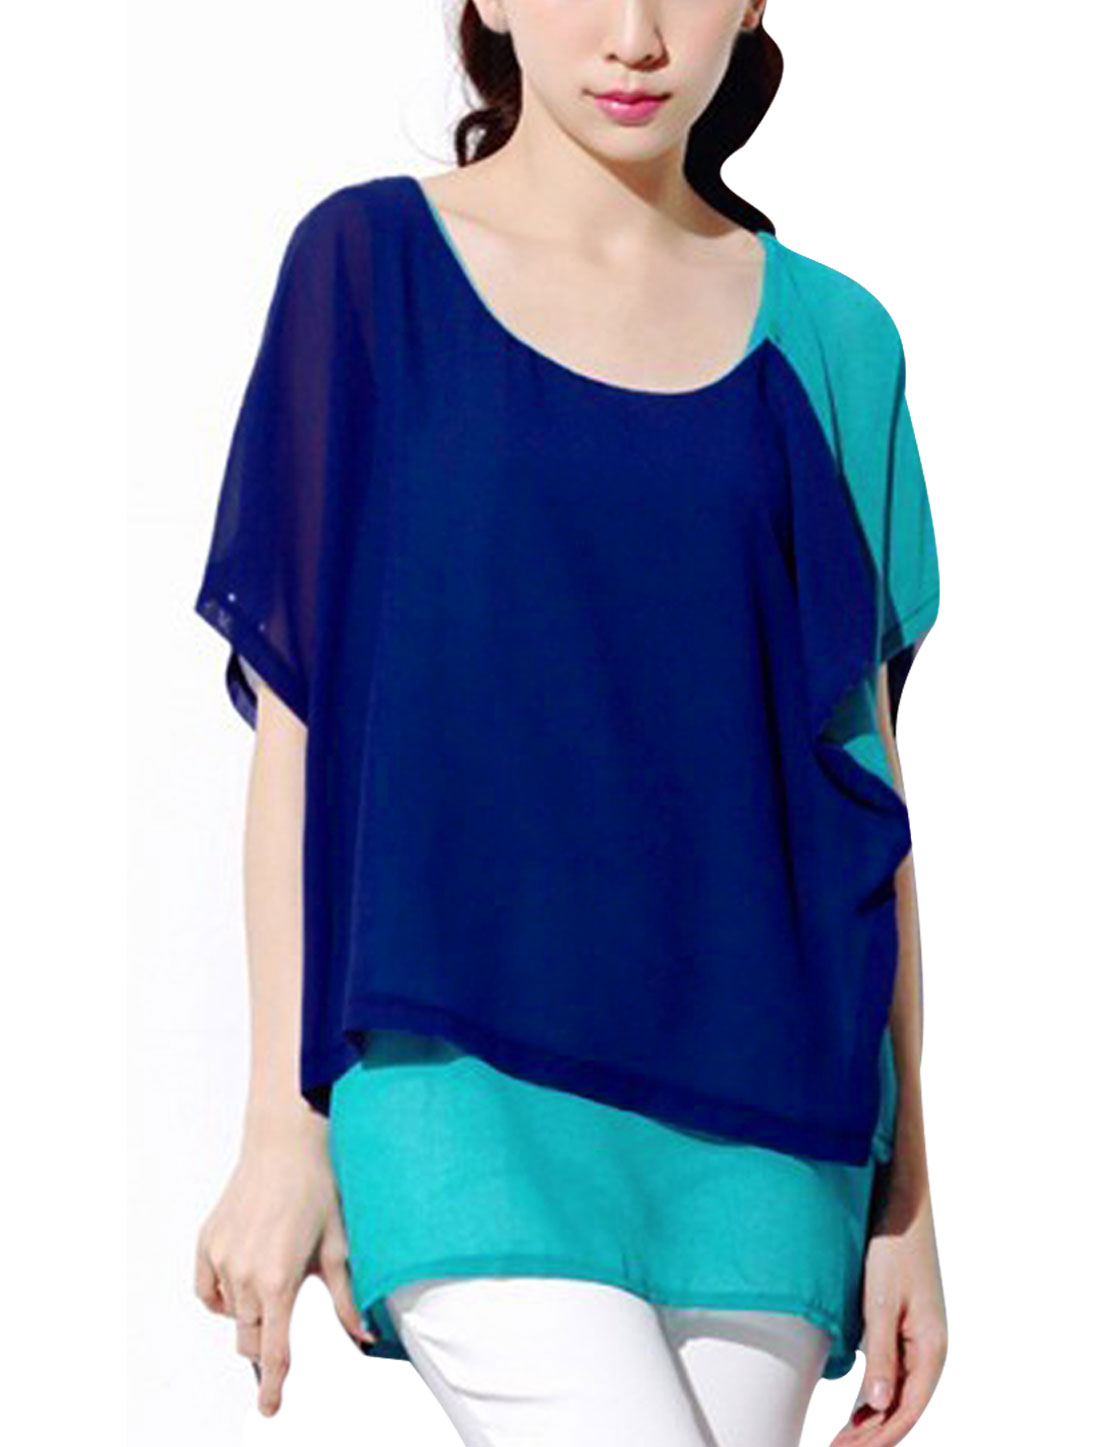 Navy Blue S See Through Color Block Fashion Two Tone Tunic Shirt for Ladies